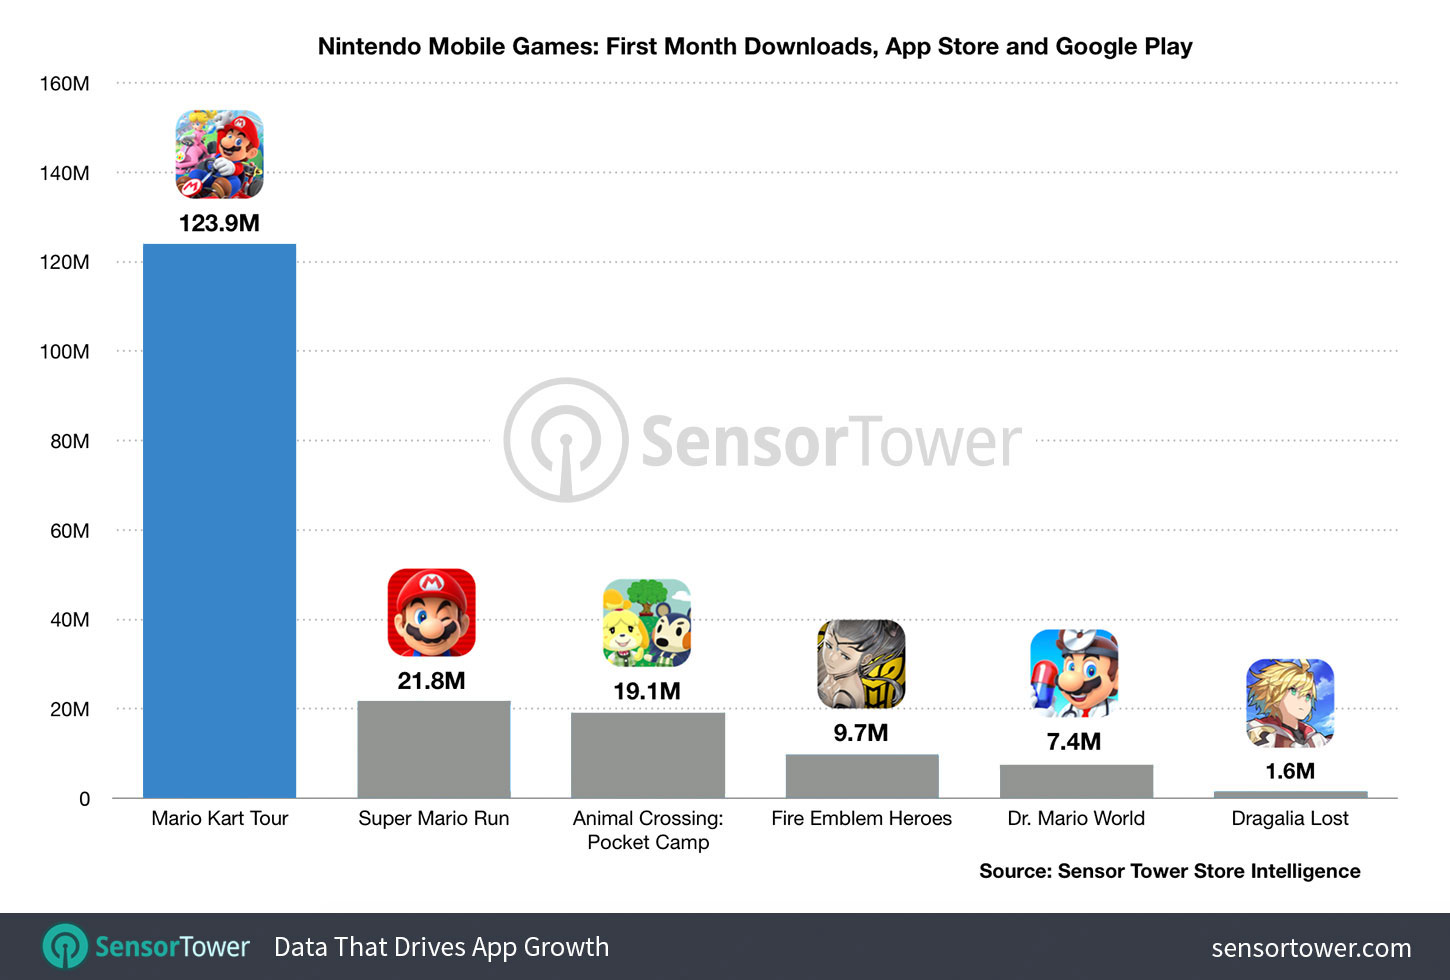 Nintendo Mobile Games: First Month Downloads, App Store and Google Play